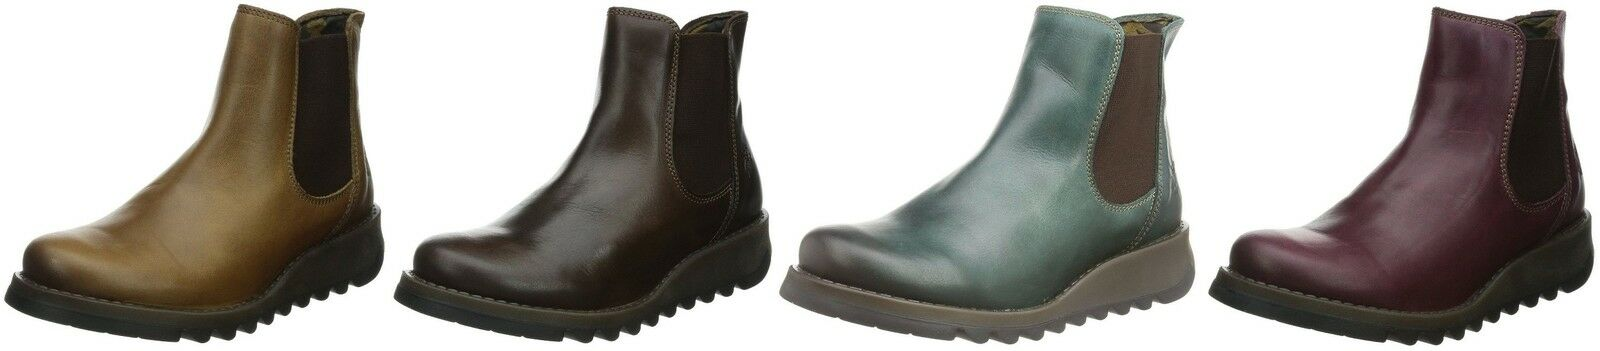 Fly london Salv Leather Womens Ankle Boots